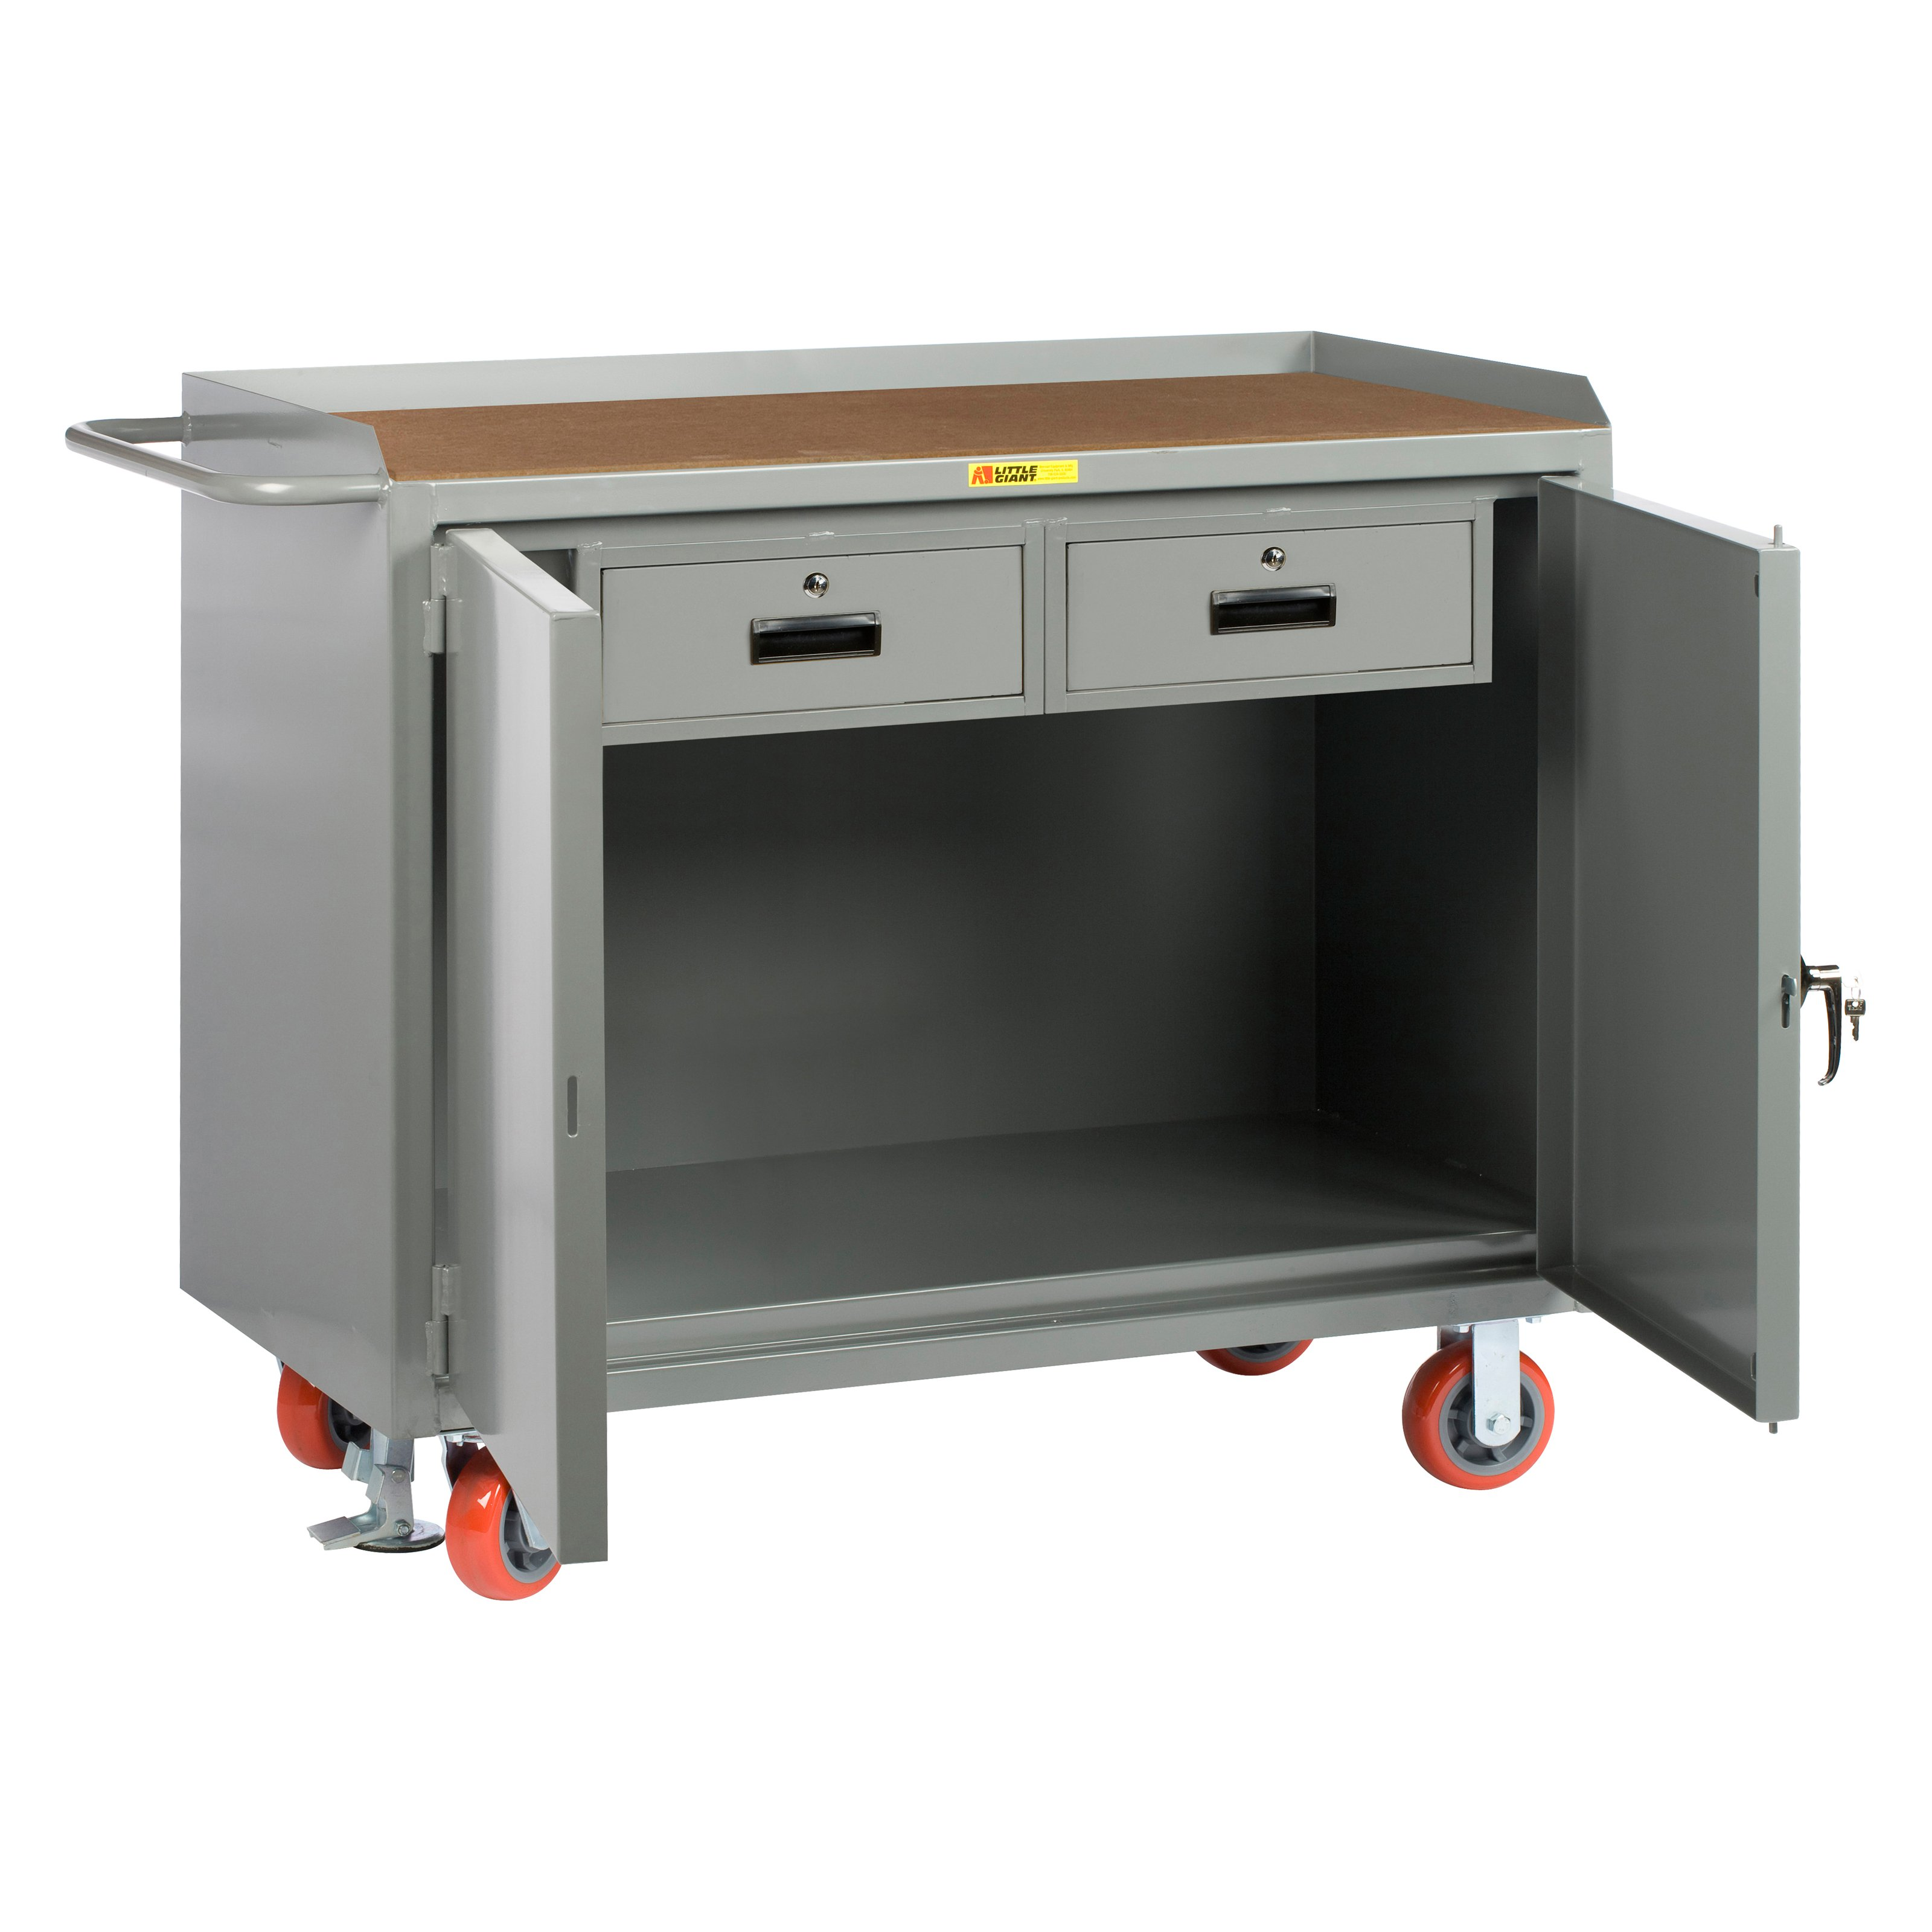 Little Giant Mobile Cabinet Workbench with Double Storage Drawers